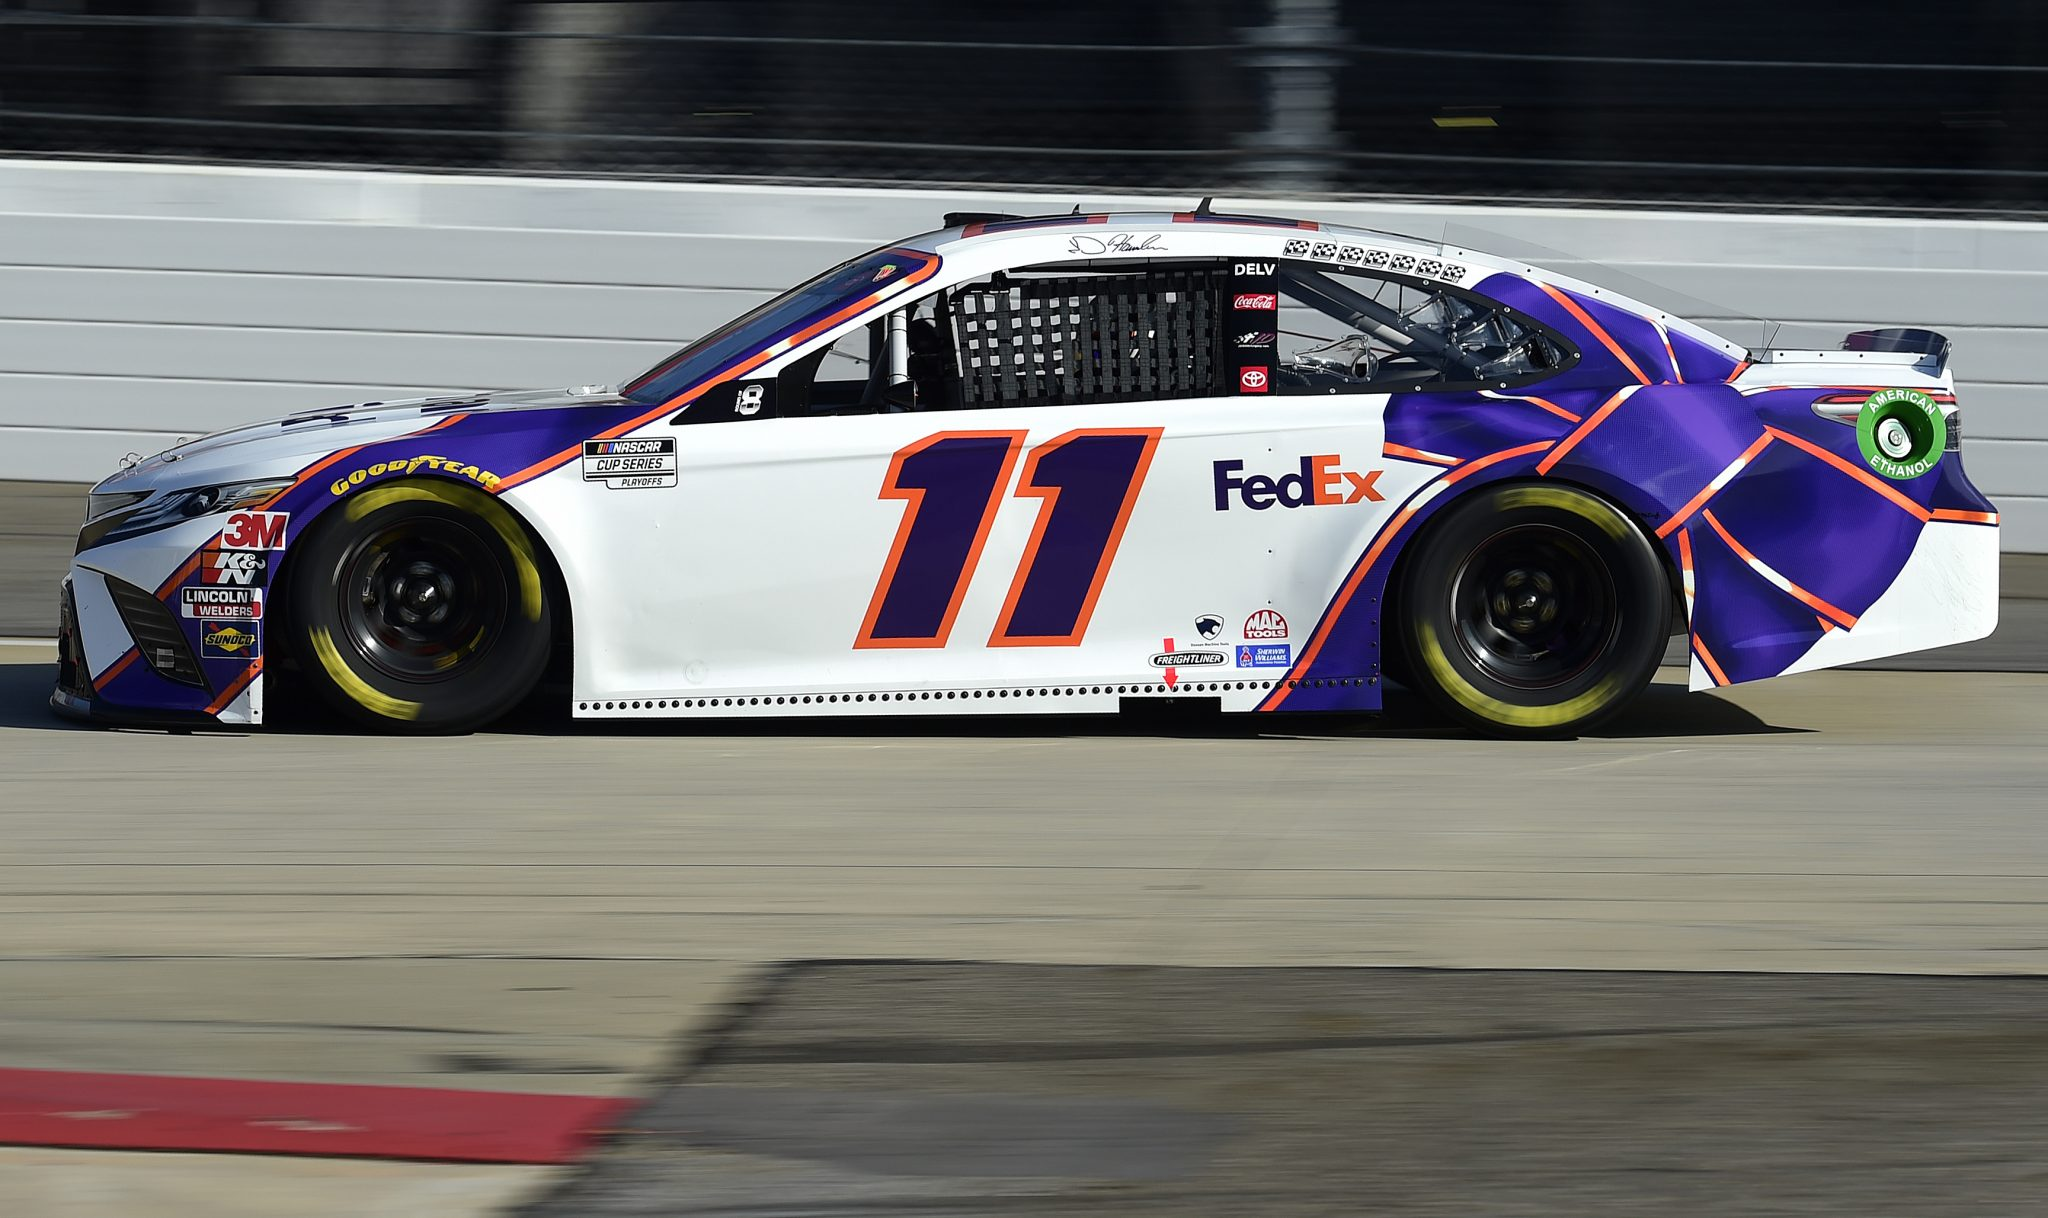 MARTINSVILLE, VIRGINIA - NOVEMBER 01: Denny Hamlin, driver of the #11 FedEx Ground Toyota, dduring the NASCAR Cup Series Xfinity 500 at Martinsville Speedway on November 01, 2020 in Martinsville, Virginia. (Photo by Jared C. Tilton/Getty Images) | Getty Images